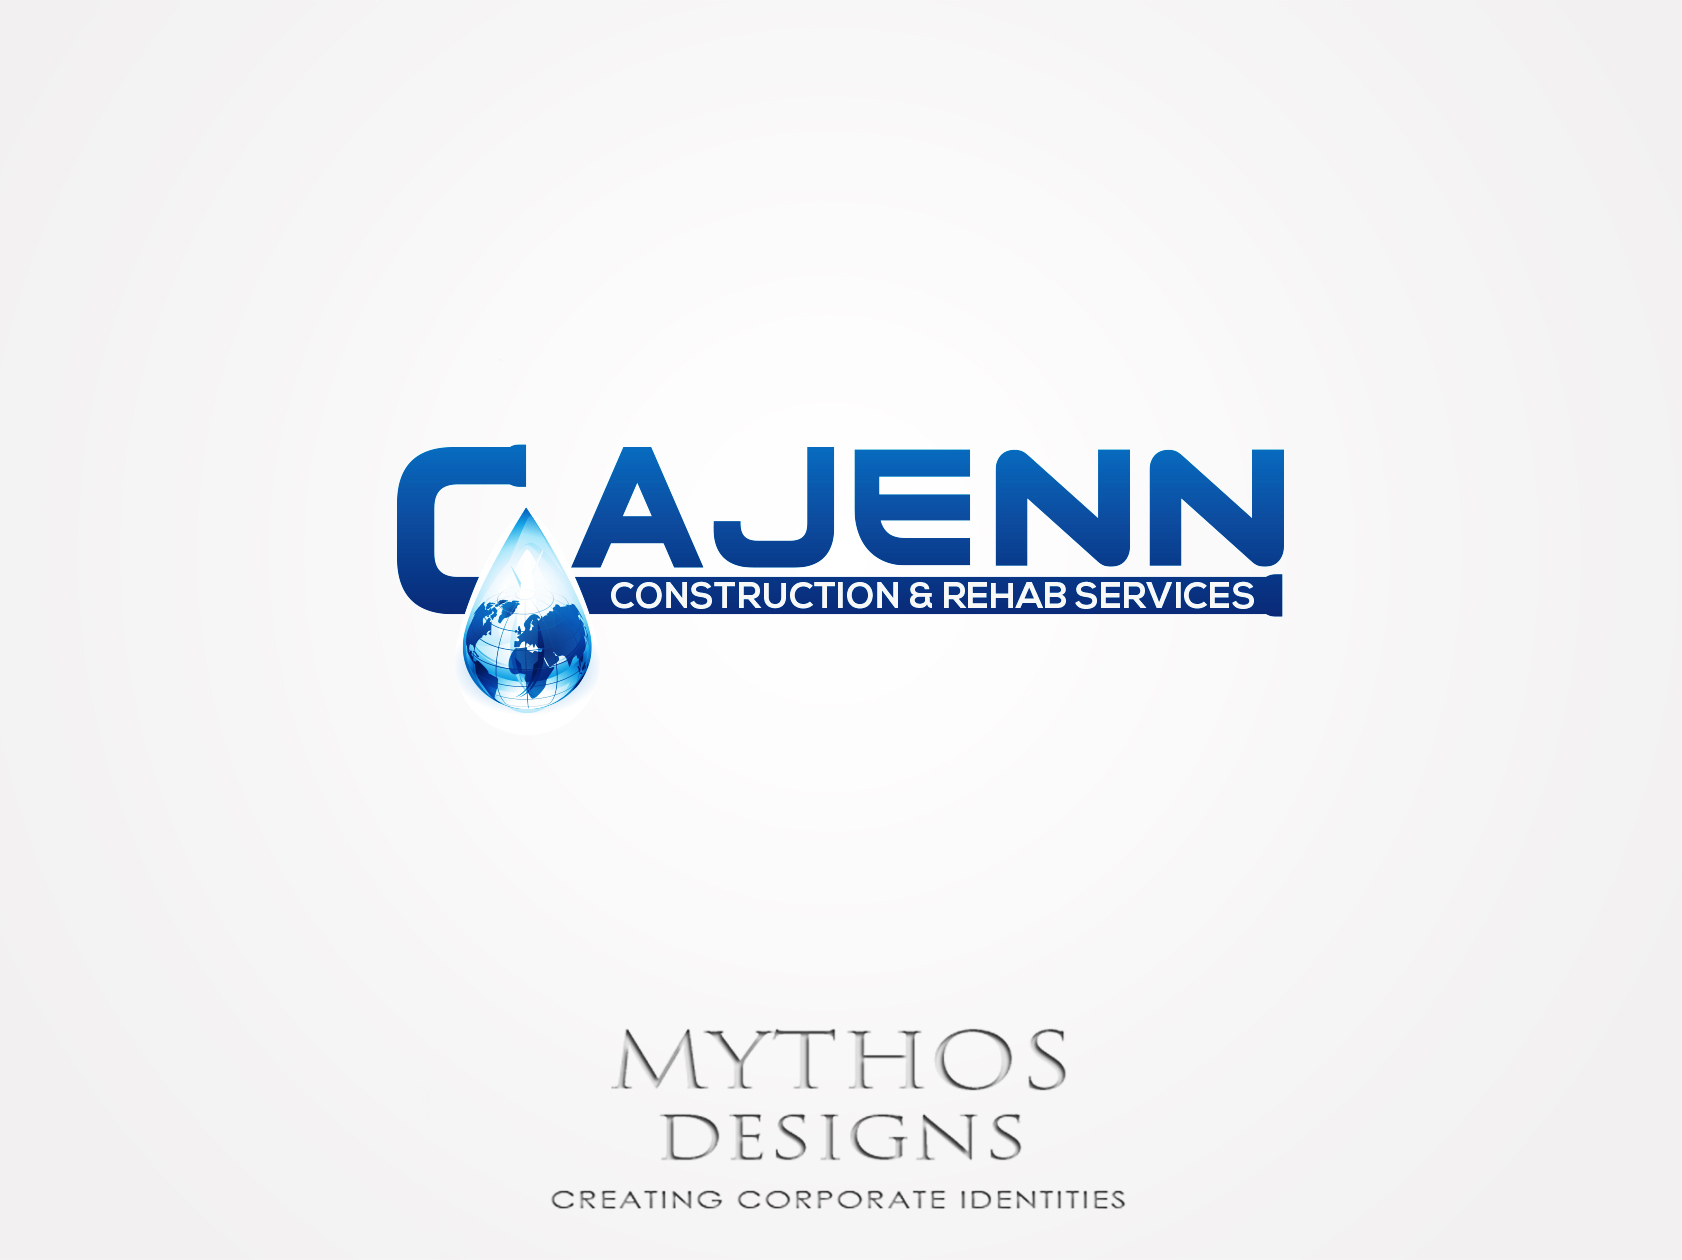 Logo Design by Mythos Designs - Entry No. 298 in the Logo Design Contest New Logo Design for CaJenn Construction & Rehab Services.